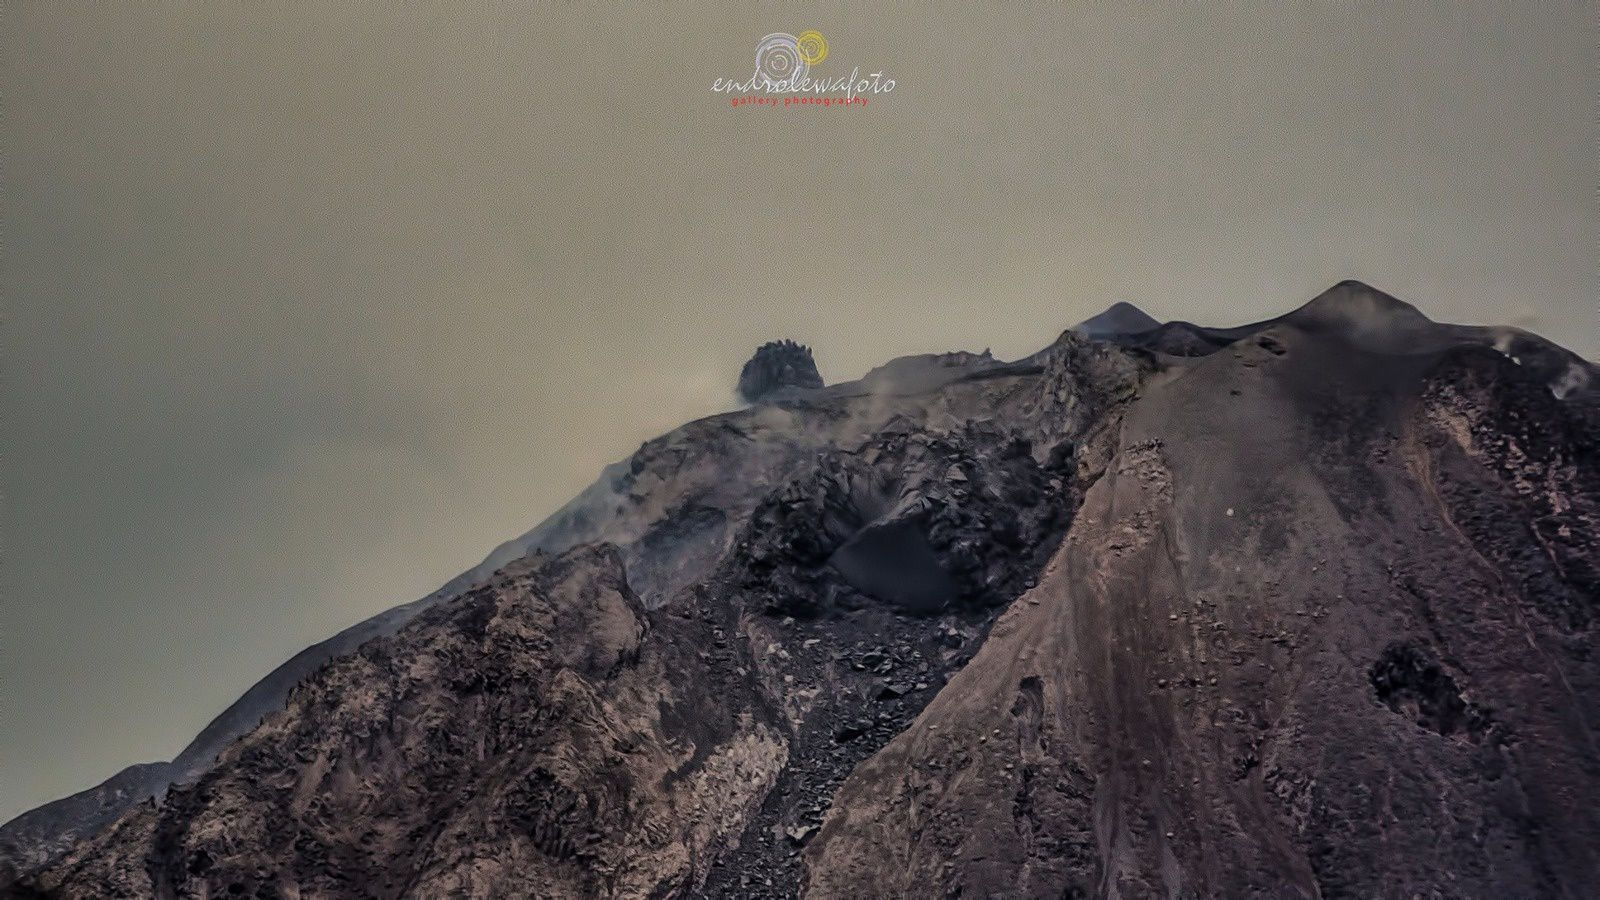 Dome of Sinabung on 16/09/2016 at 11h54 (top) and 17.09.2016 at 11:37 (bottom) - Photo endrolewa